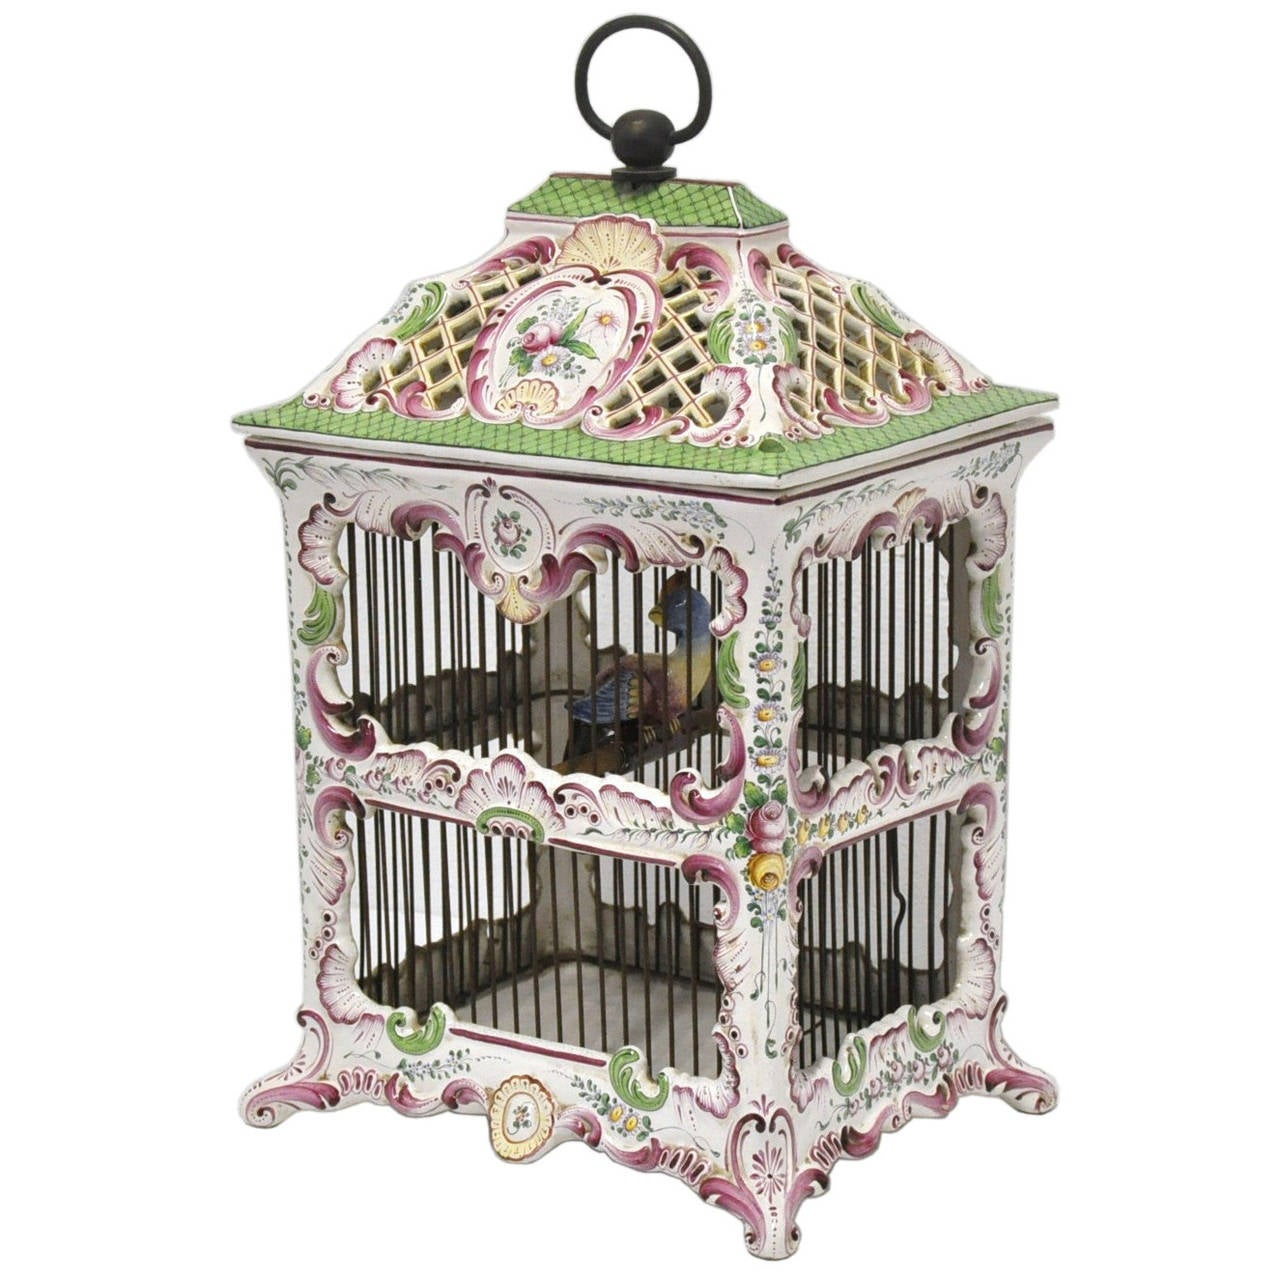 under birdcage in lamp required of electrical bless no minutes diy work